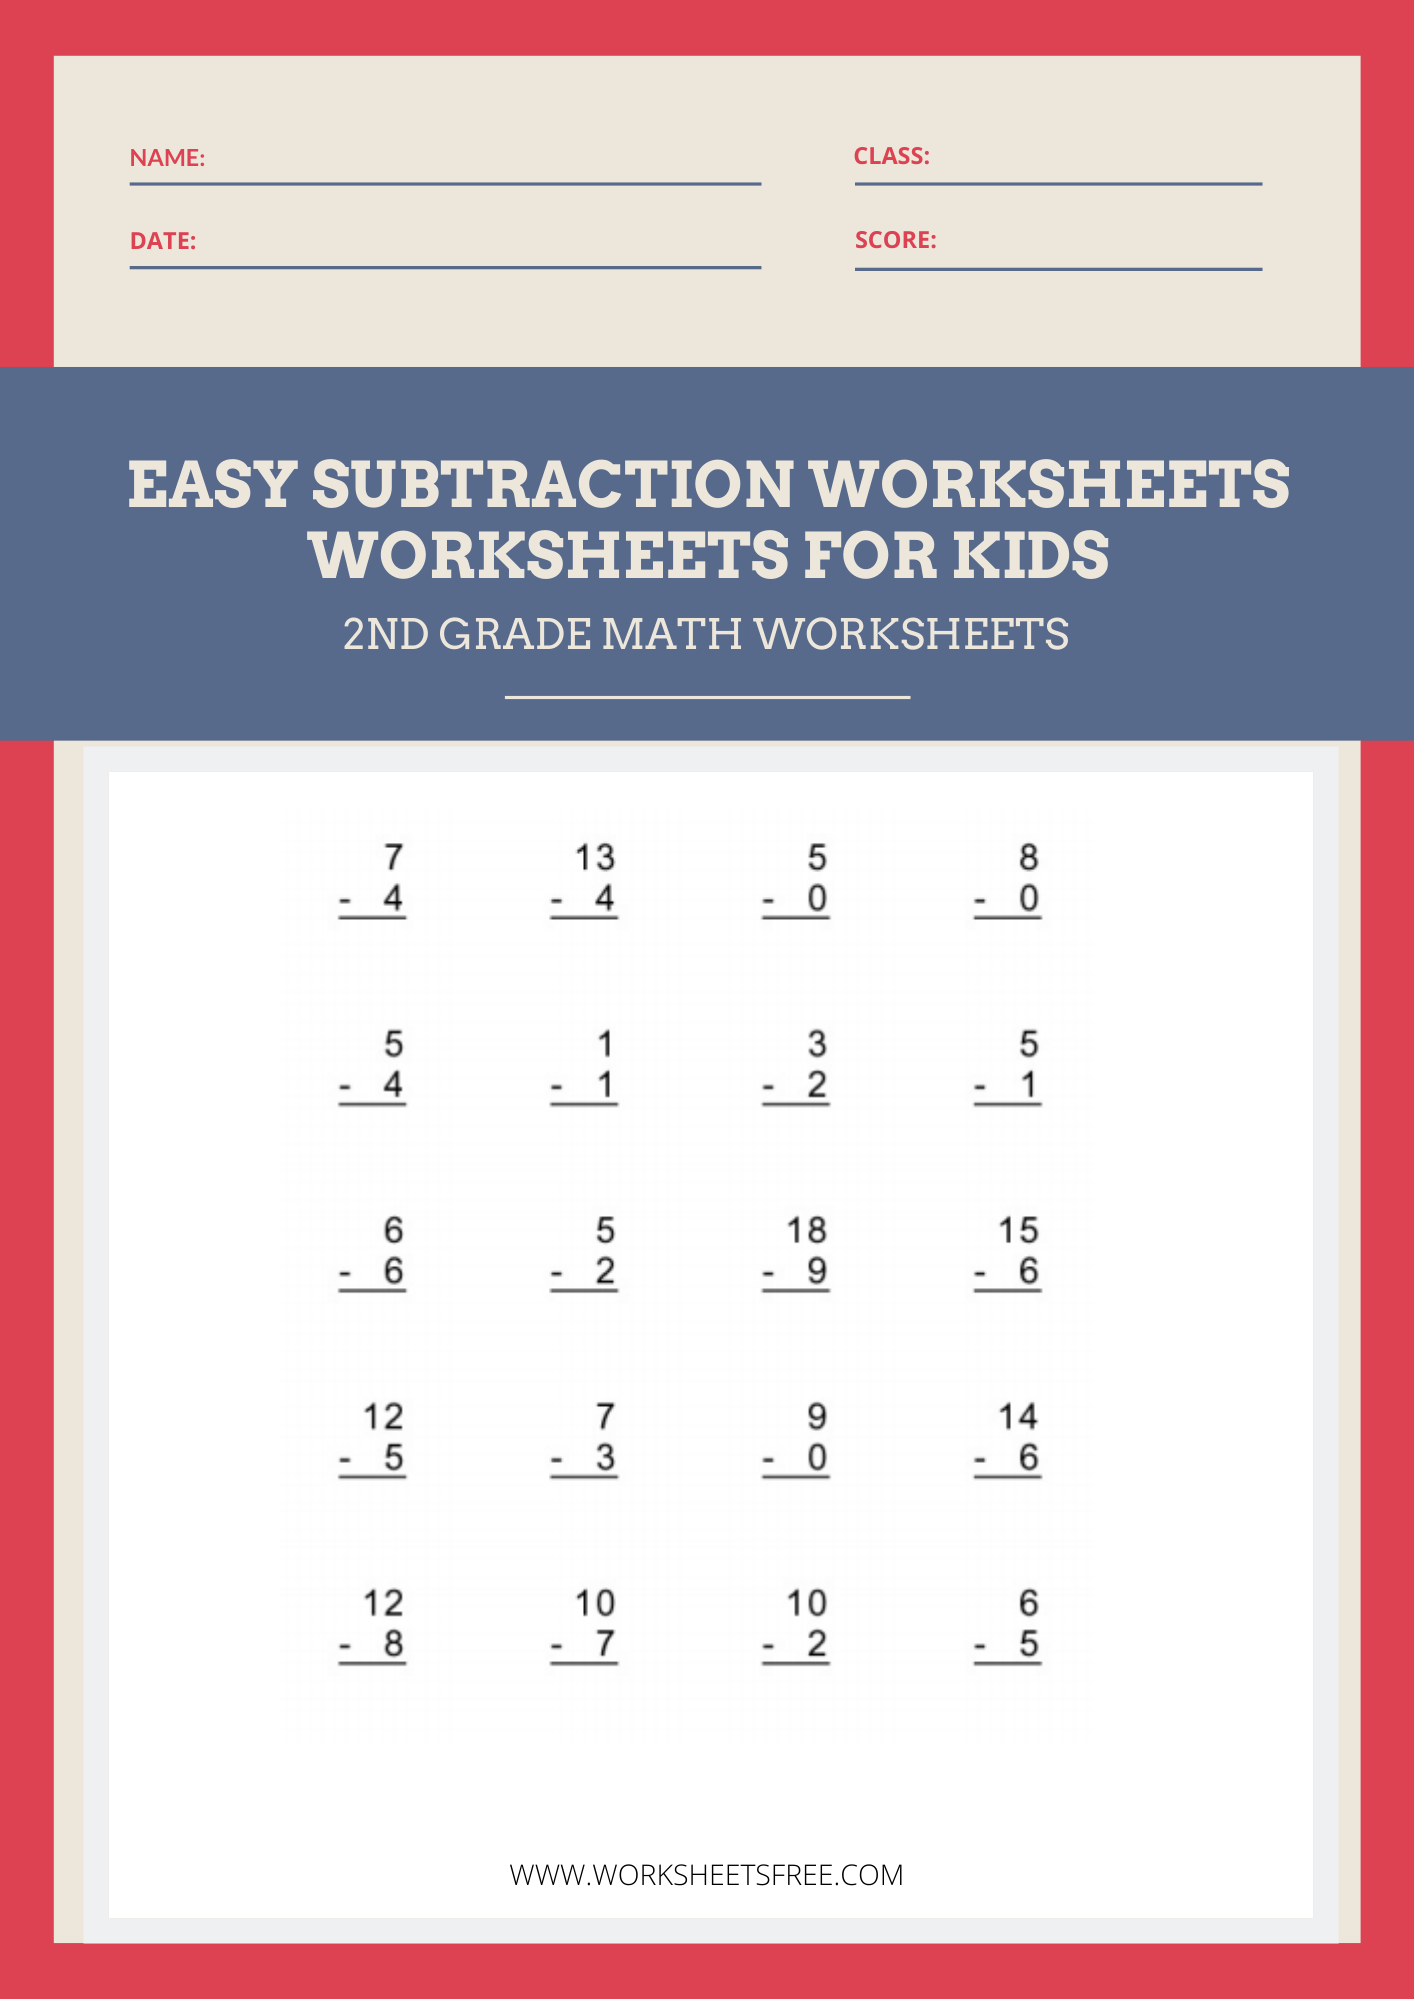 hight resolution of Easy-Subtraction-Worksheets   Worksheets Free